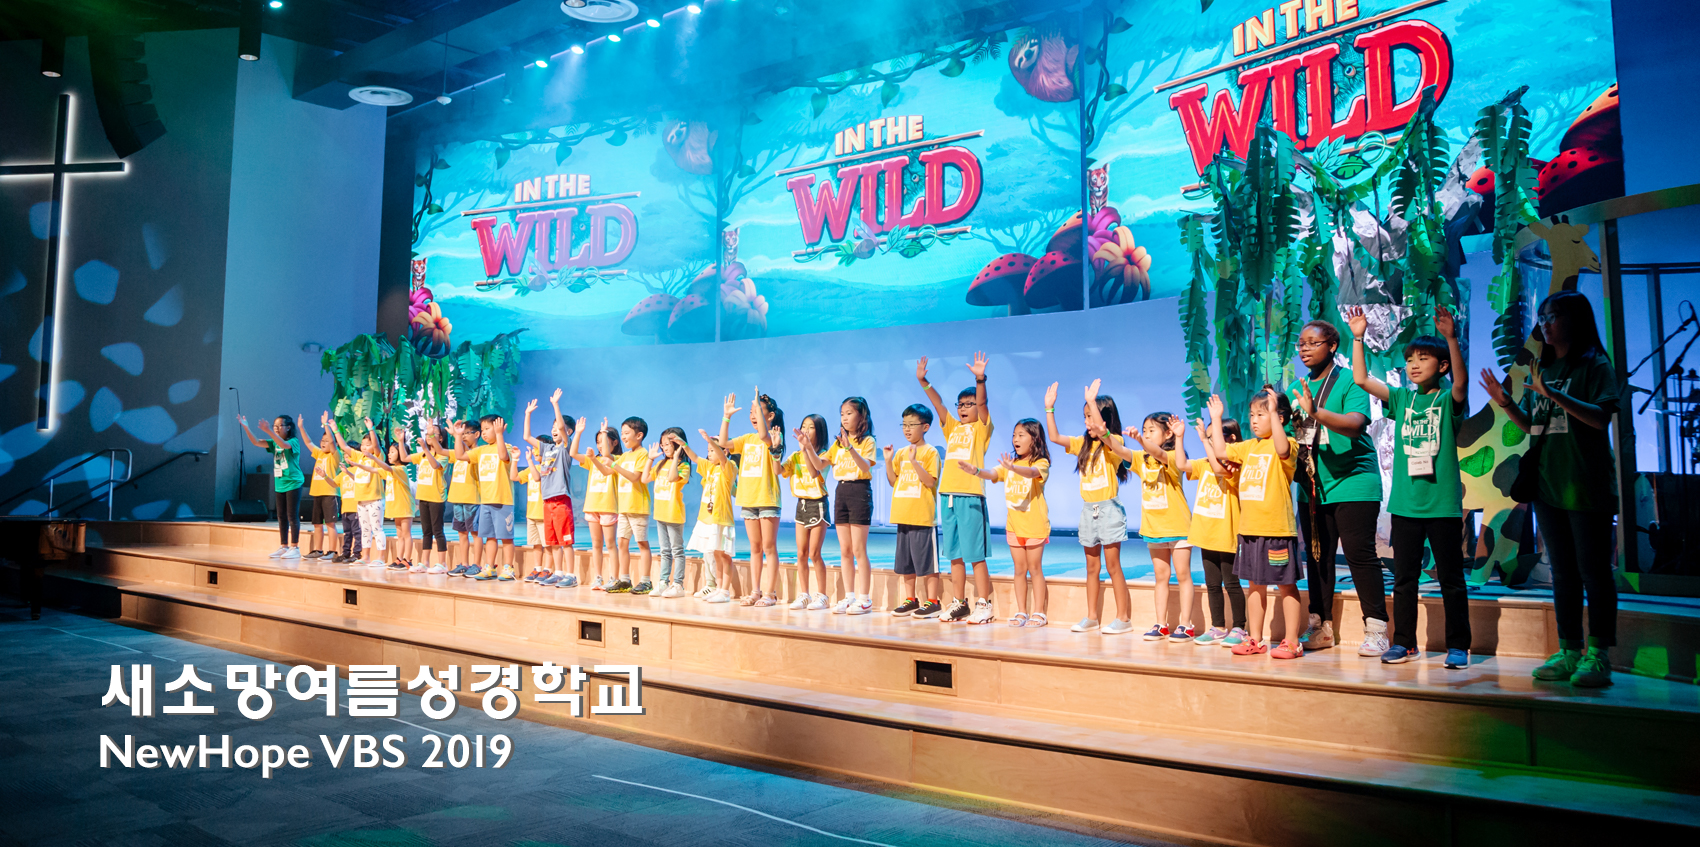 NewHope VBS 2019 6